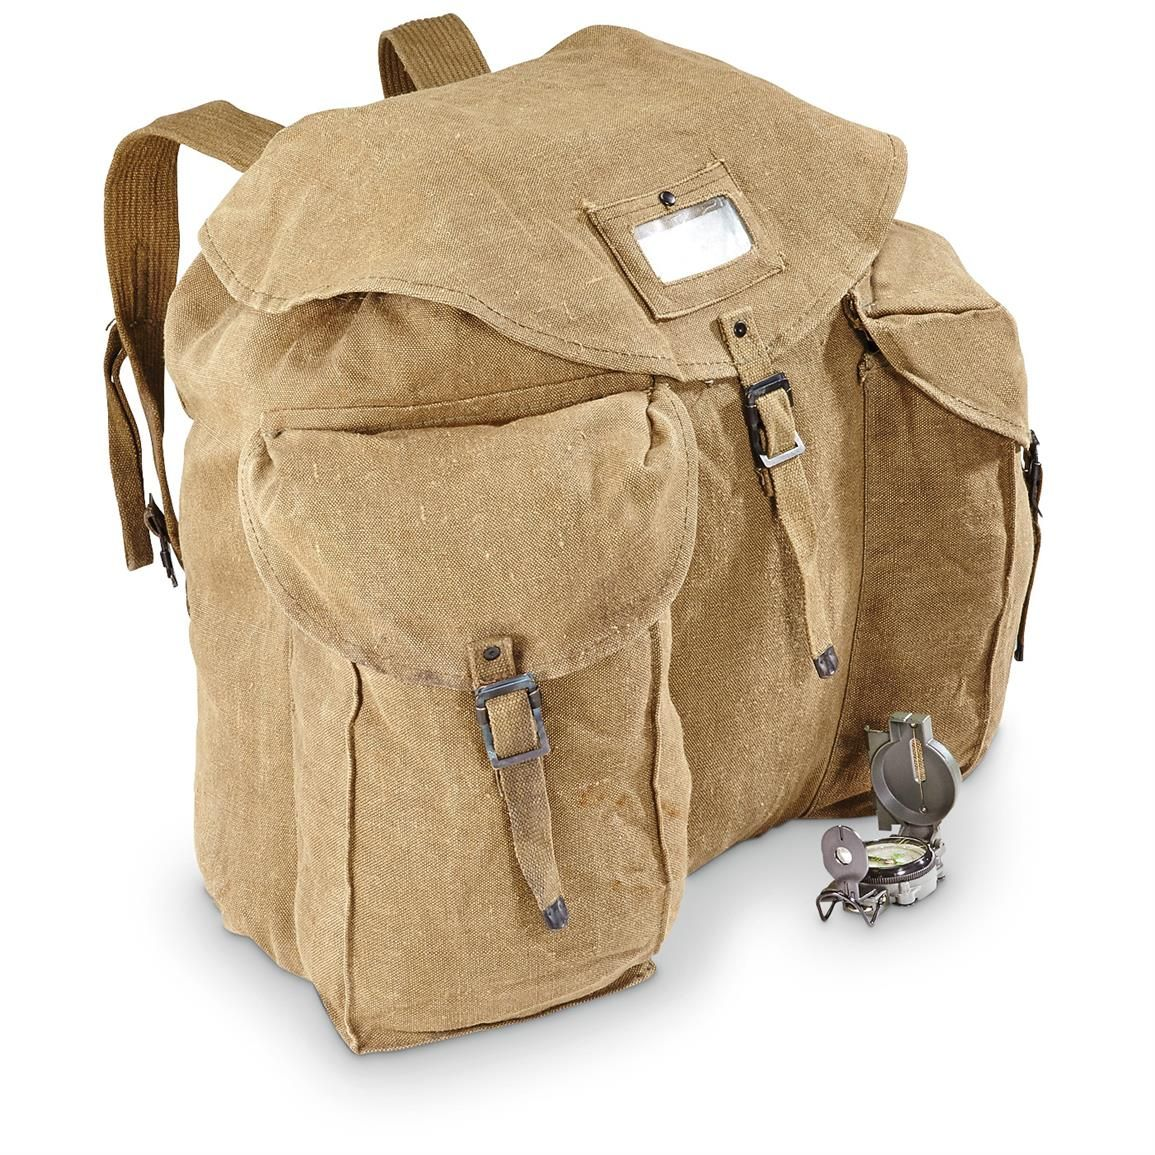 6ffc1003b4 Italian Military Surplus Cotton Canvas XL Rucksack Backpack With Locking  Chain